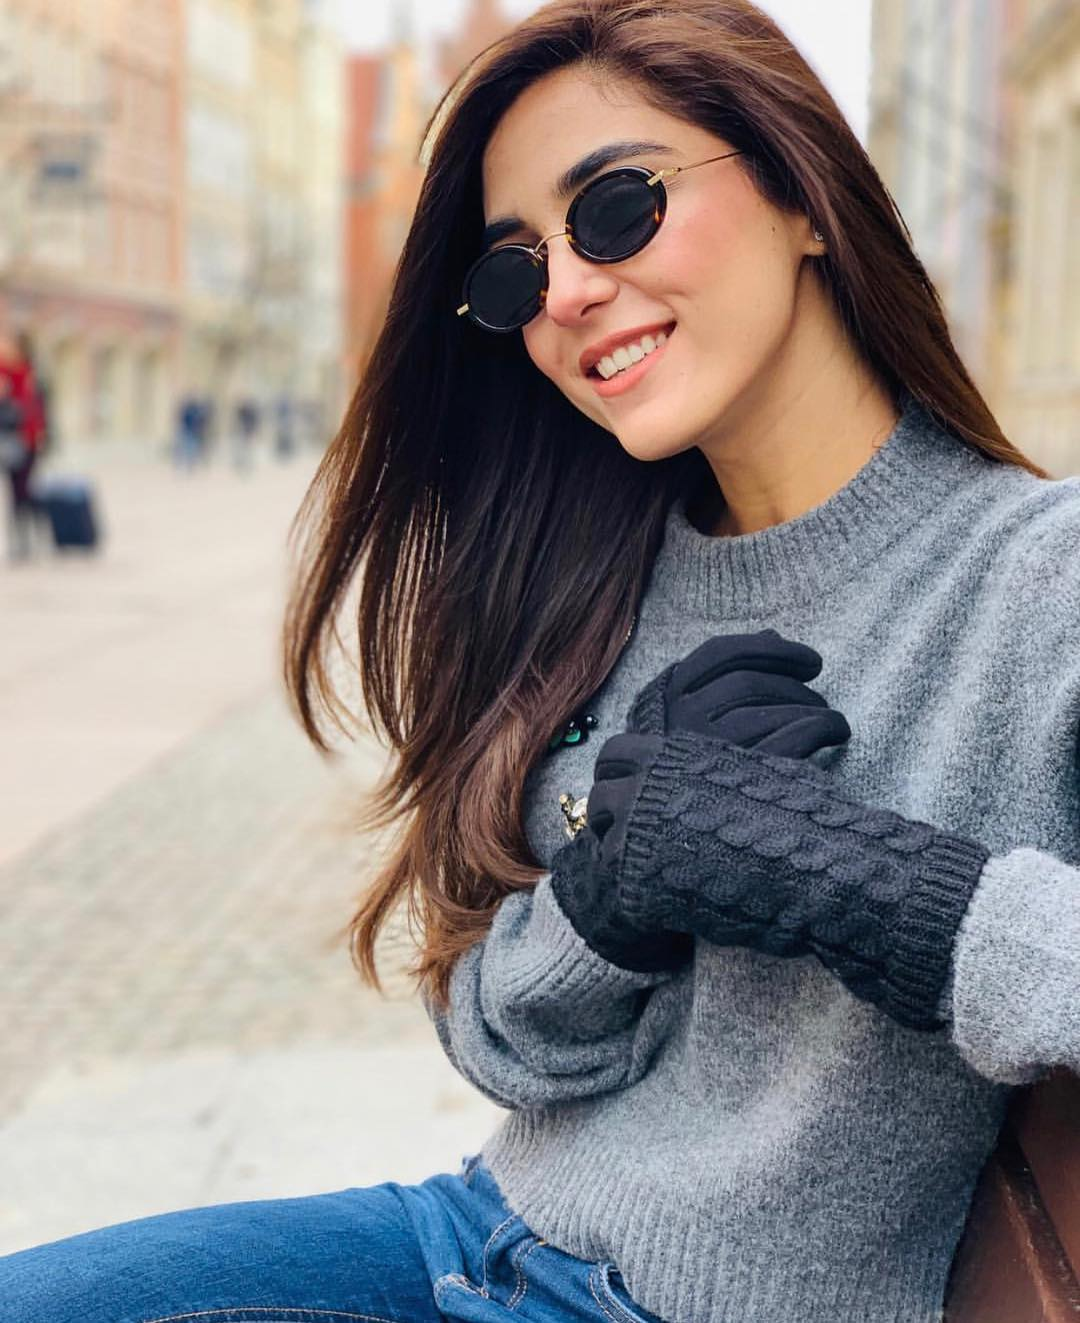 New Awesome Photos of Maya Ali in Poland